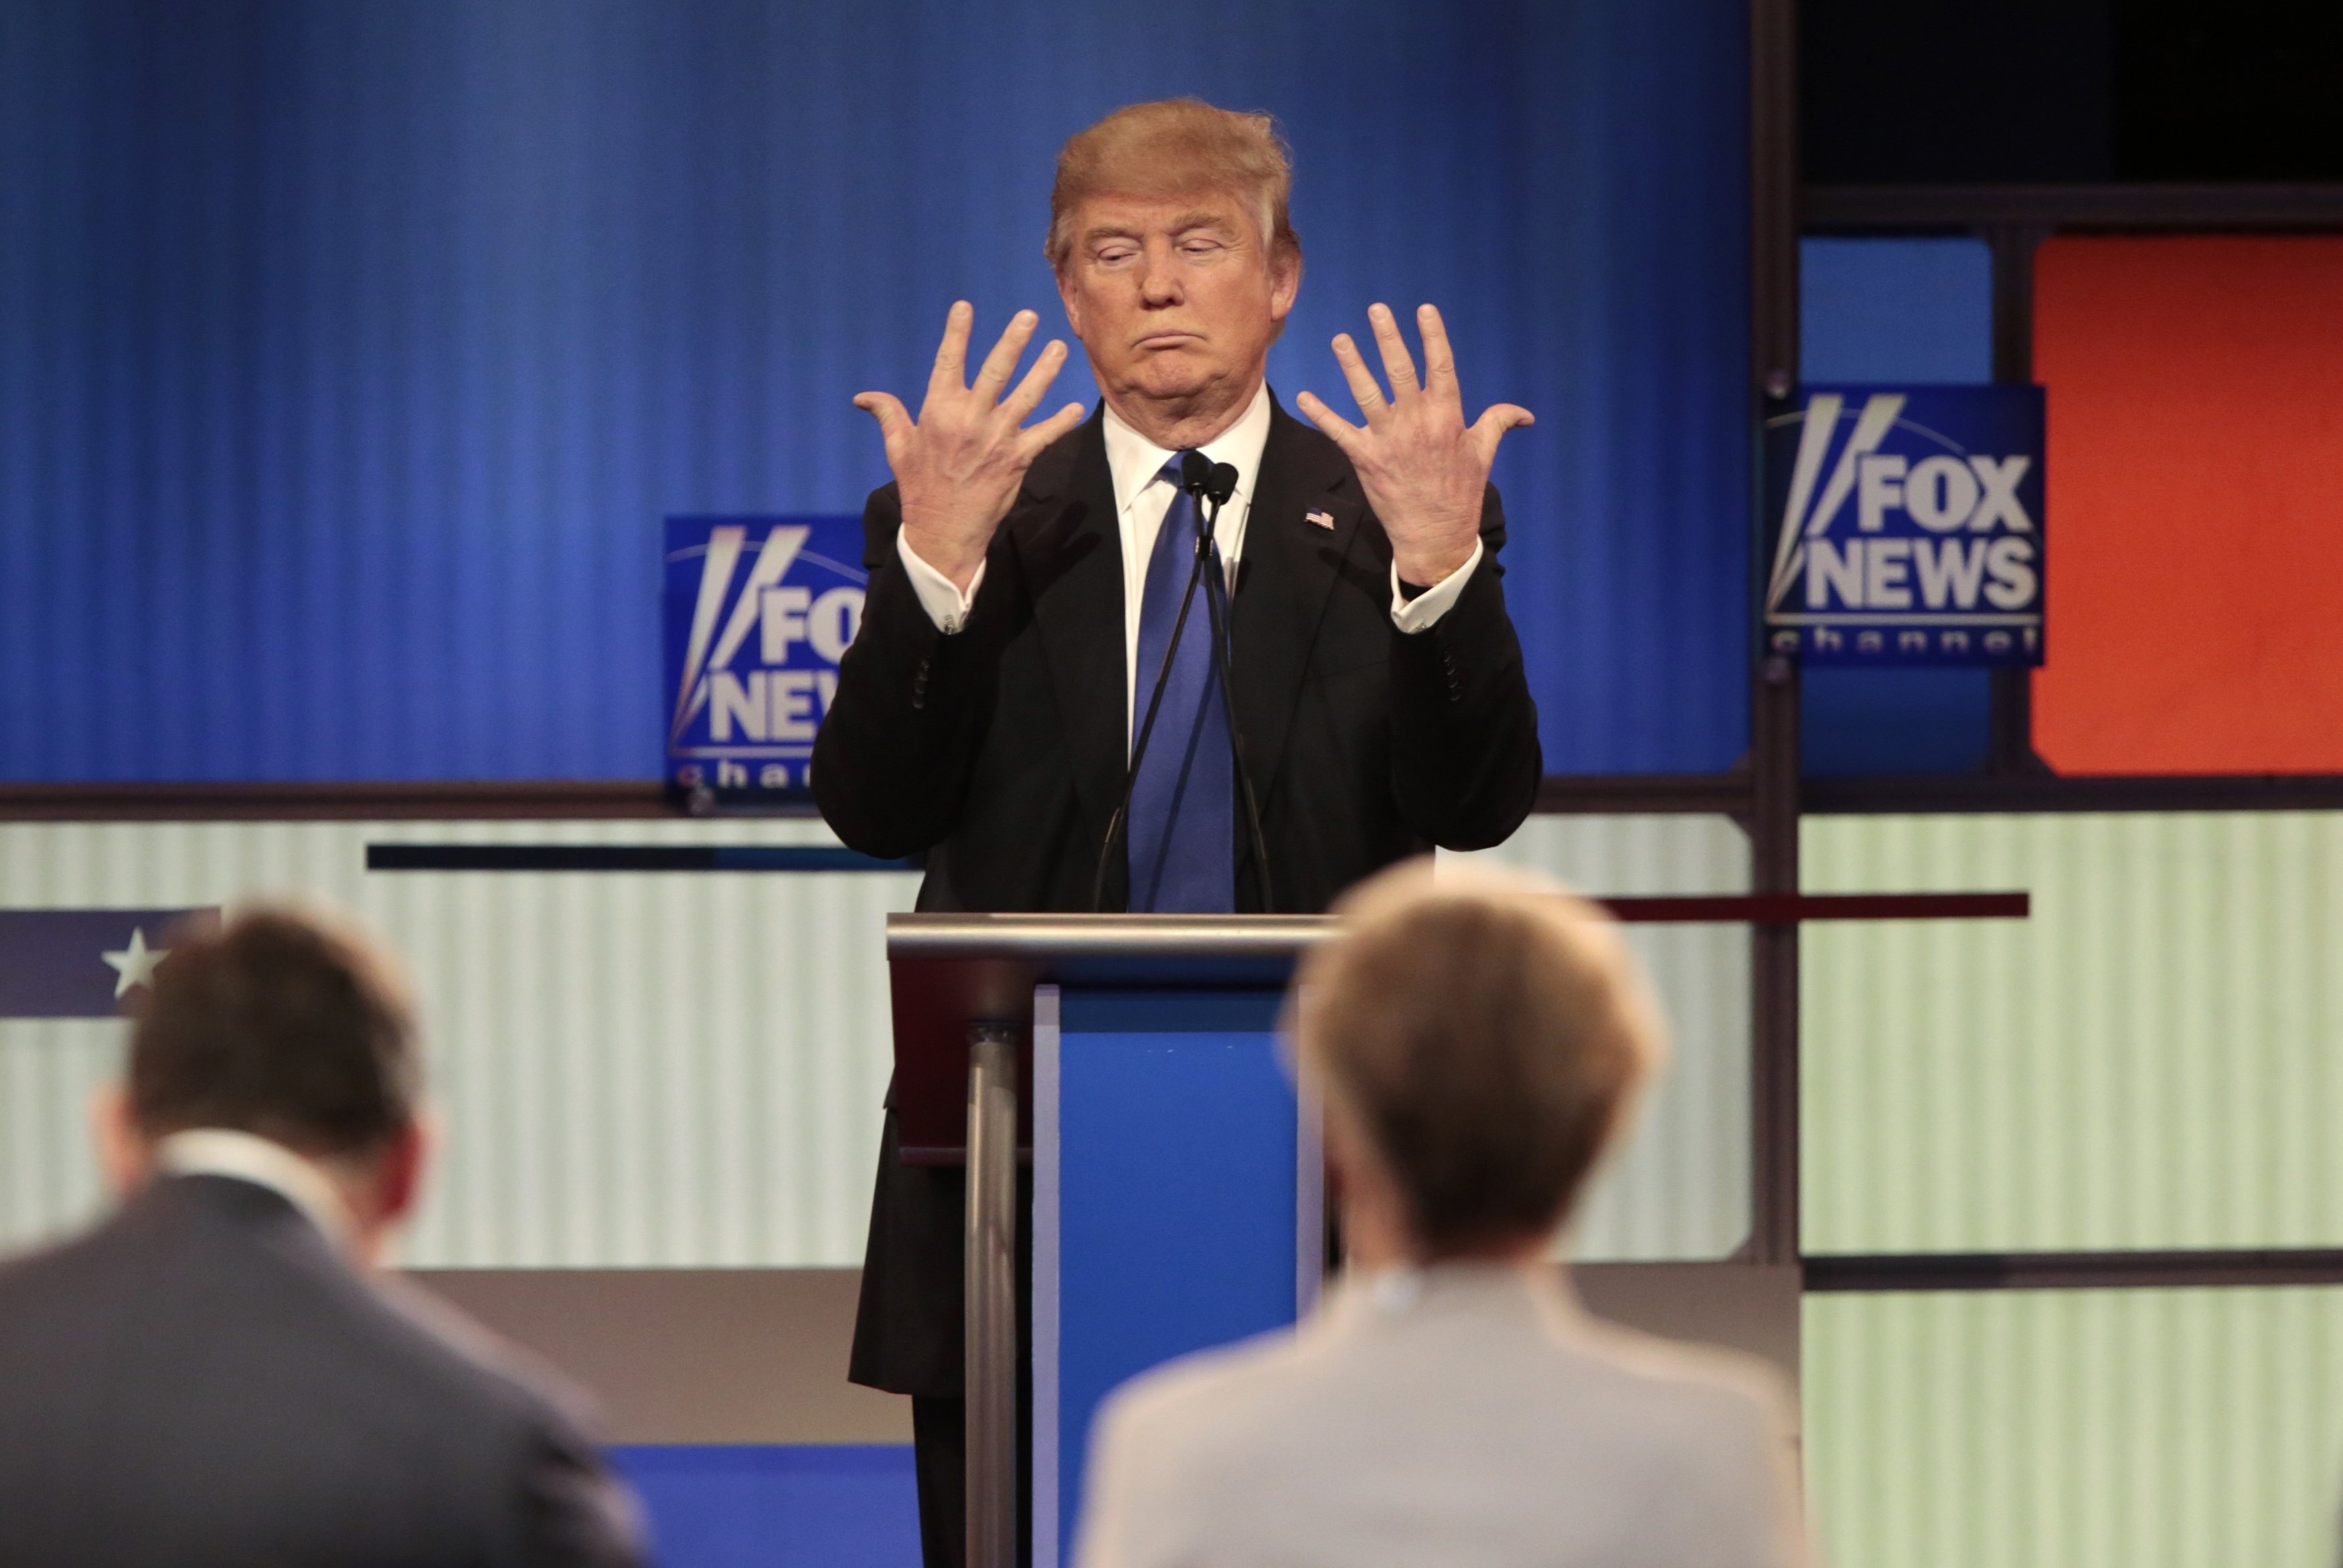 Republican U.S. presidential candidate Trump shows off the size of his hands as Fox News Channel moderators Baier and Kelly look on at the U.S. Republican presidential candidates debate in Detroit